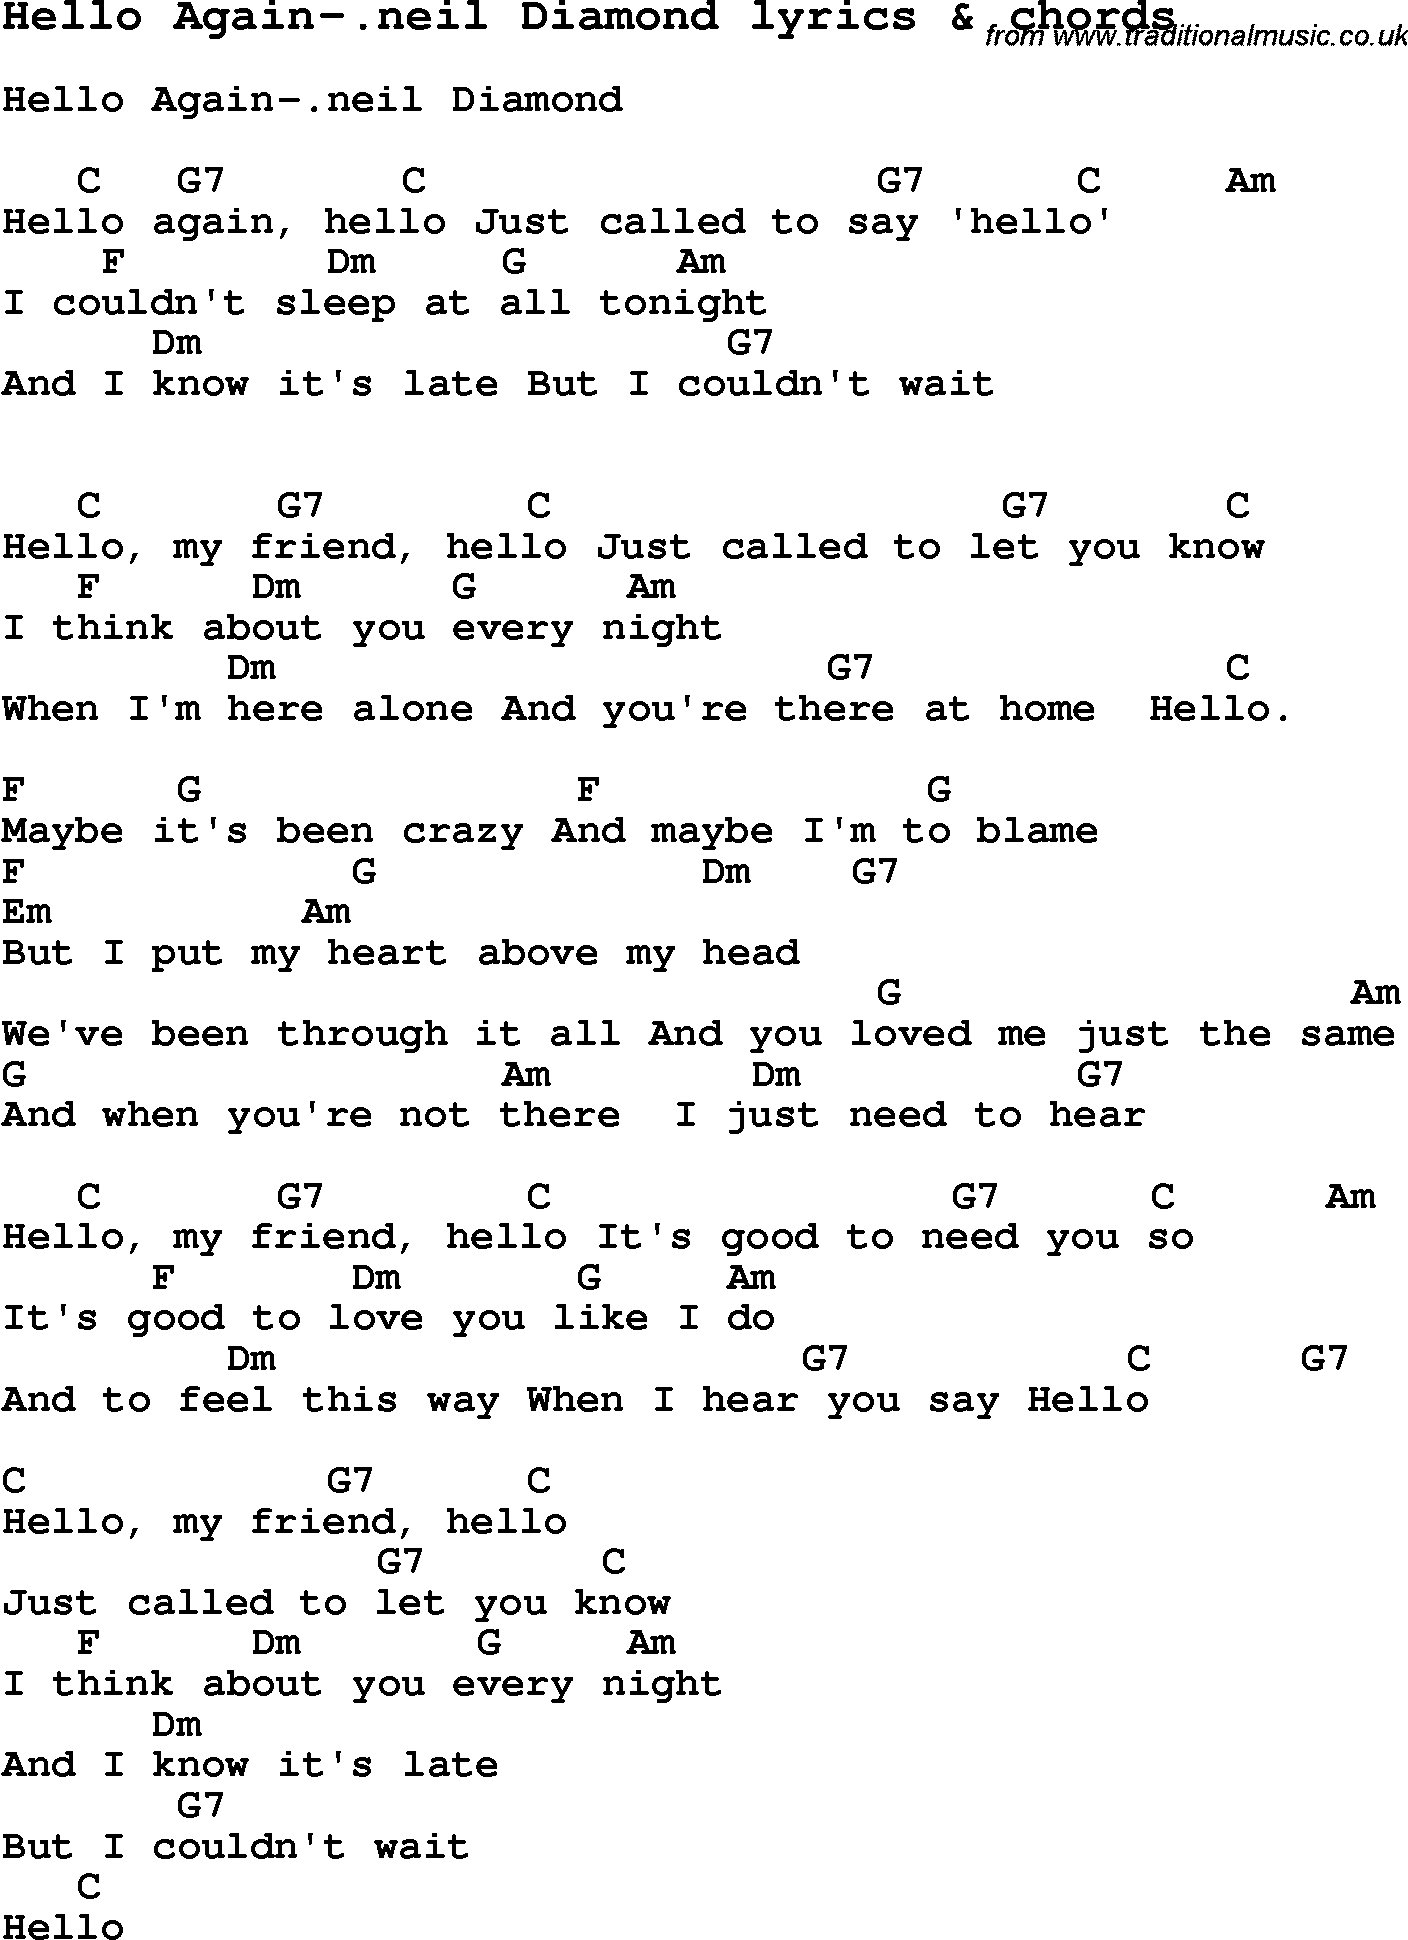 Love Song Lyrics Forhello Again Il Diamond With Chords